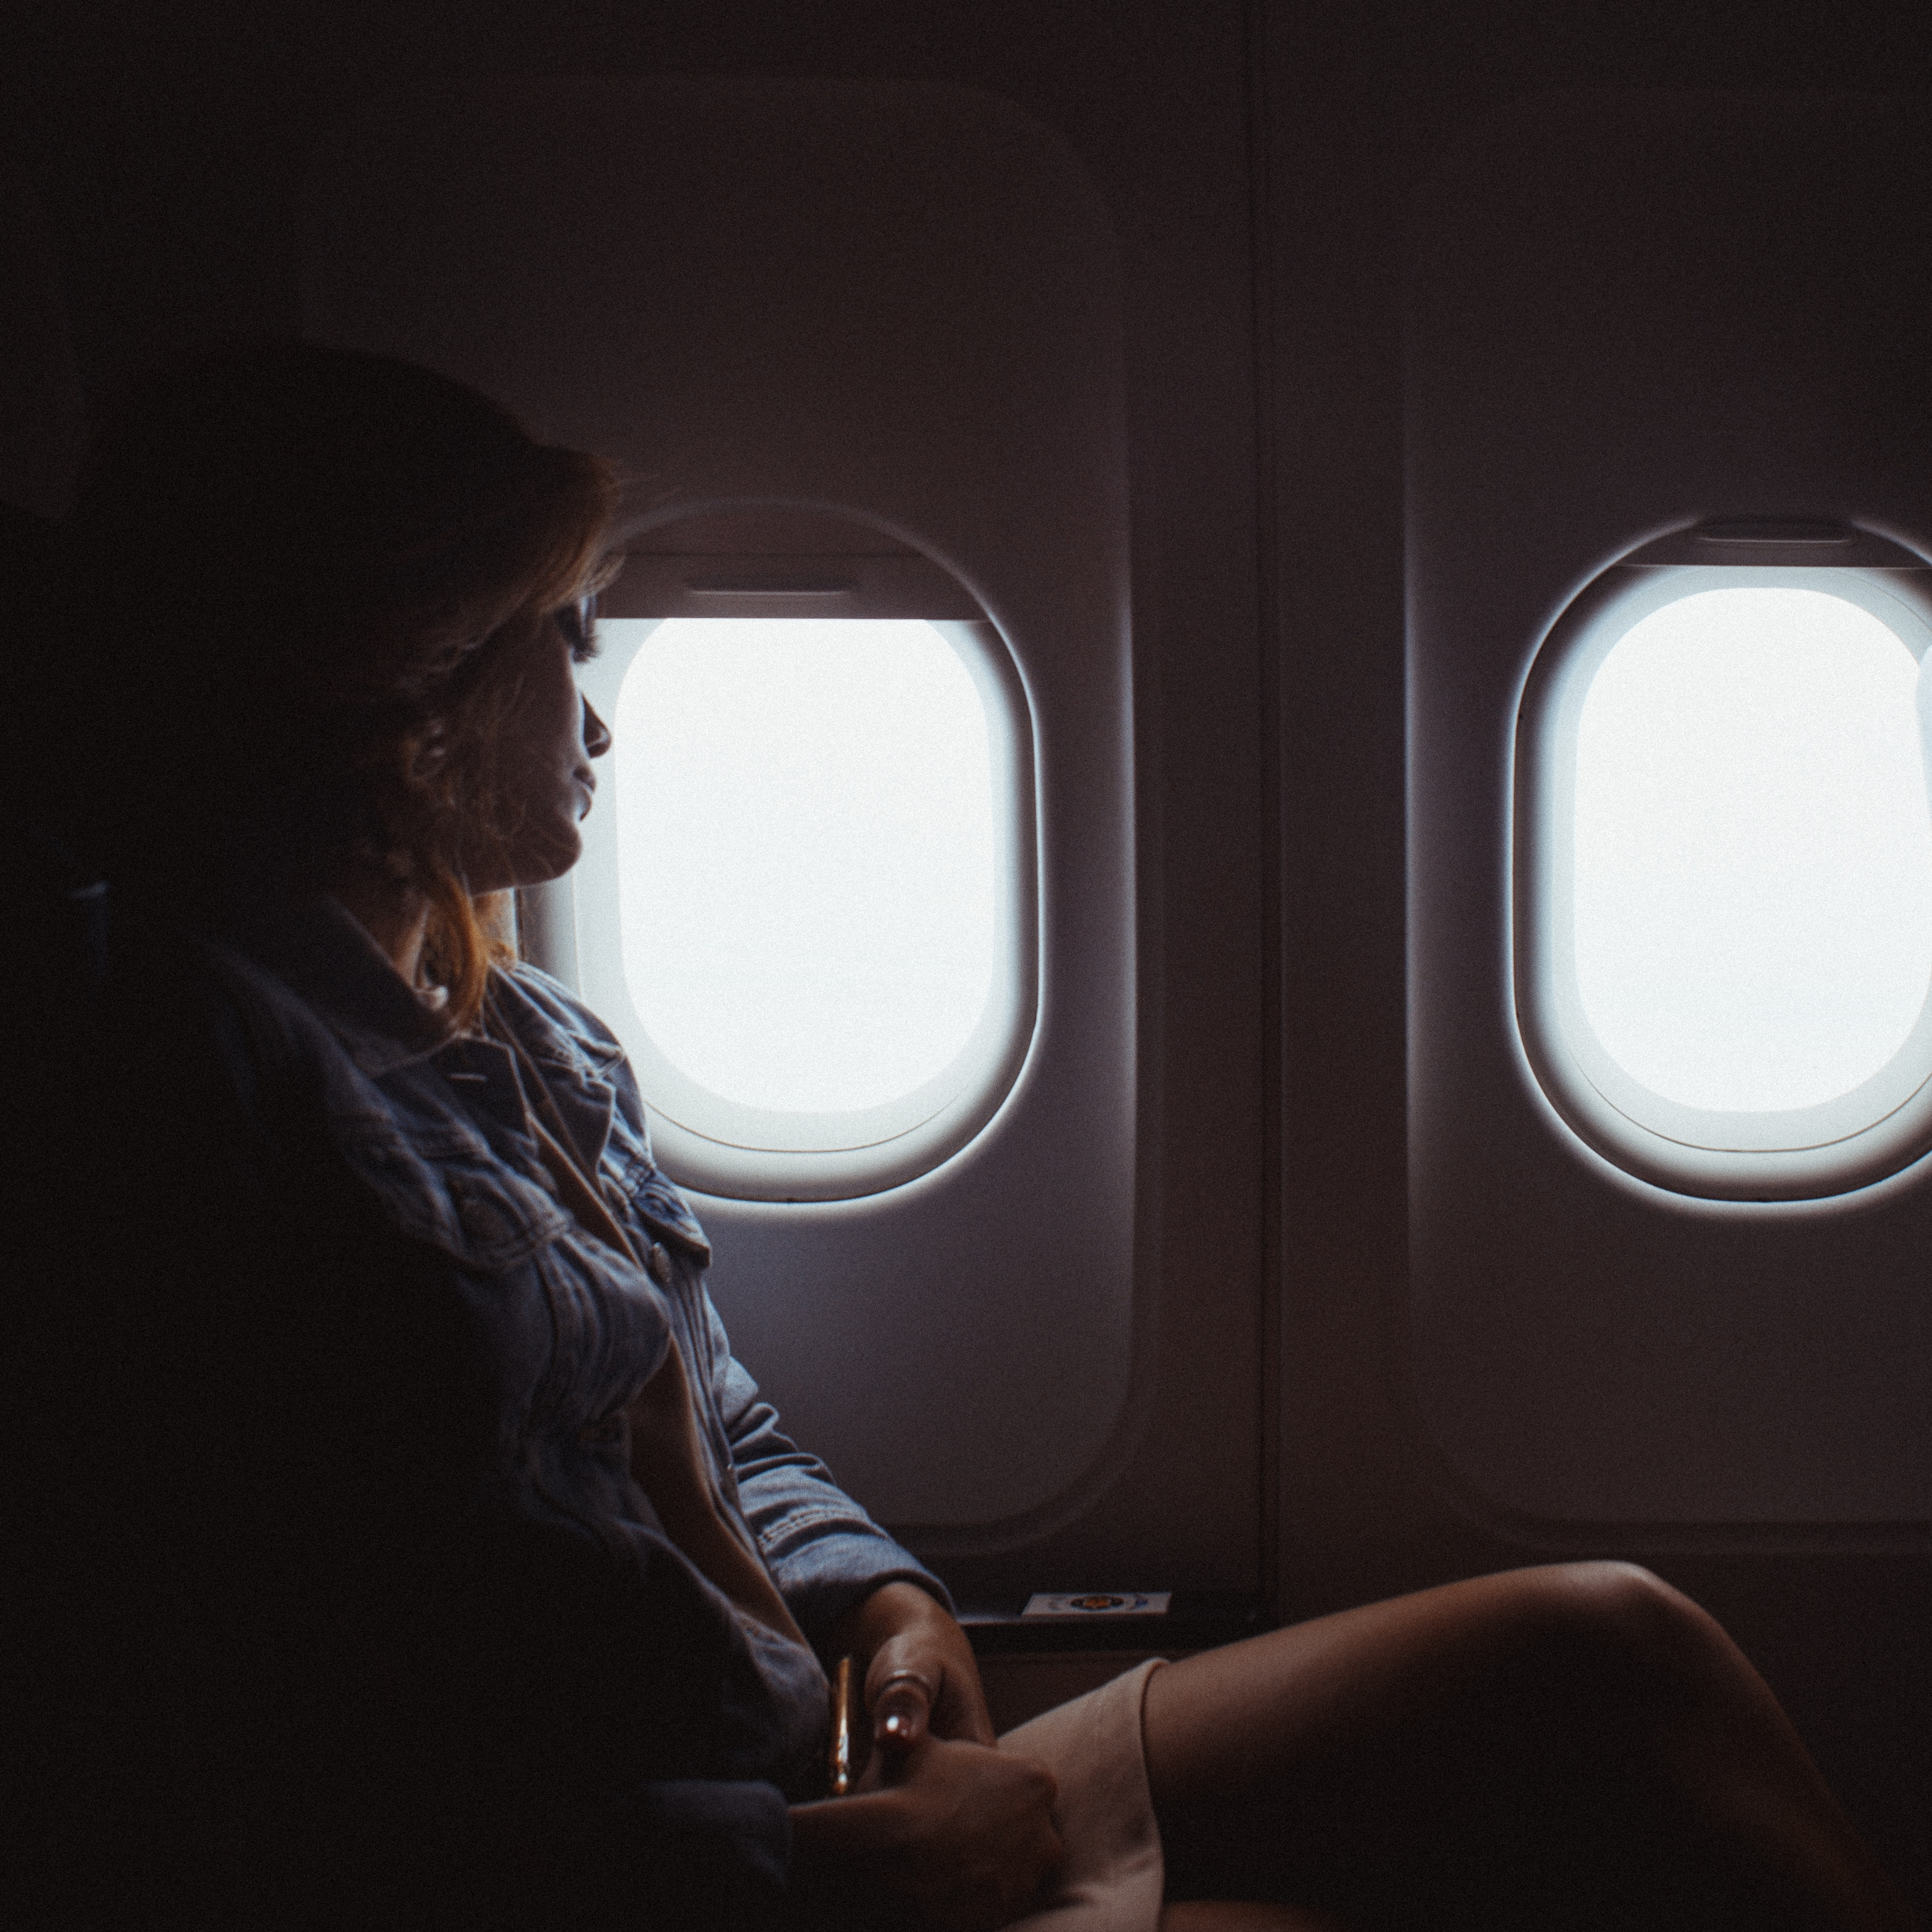 woman sitting inside airliner